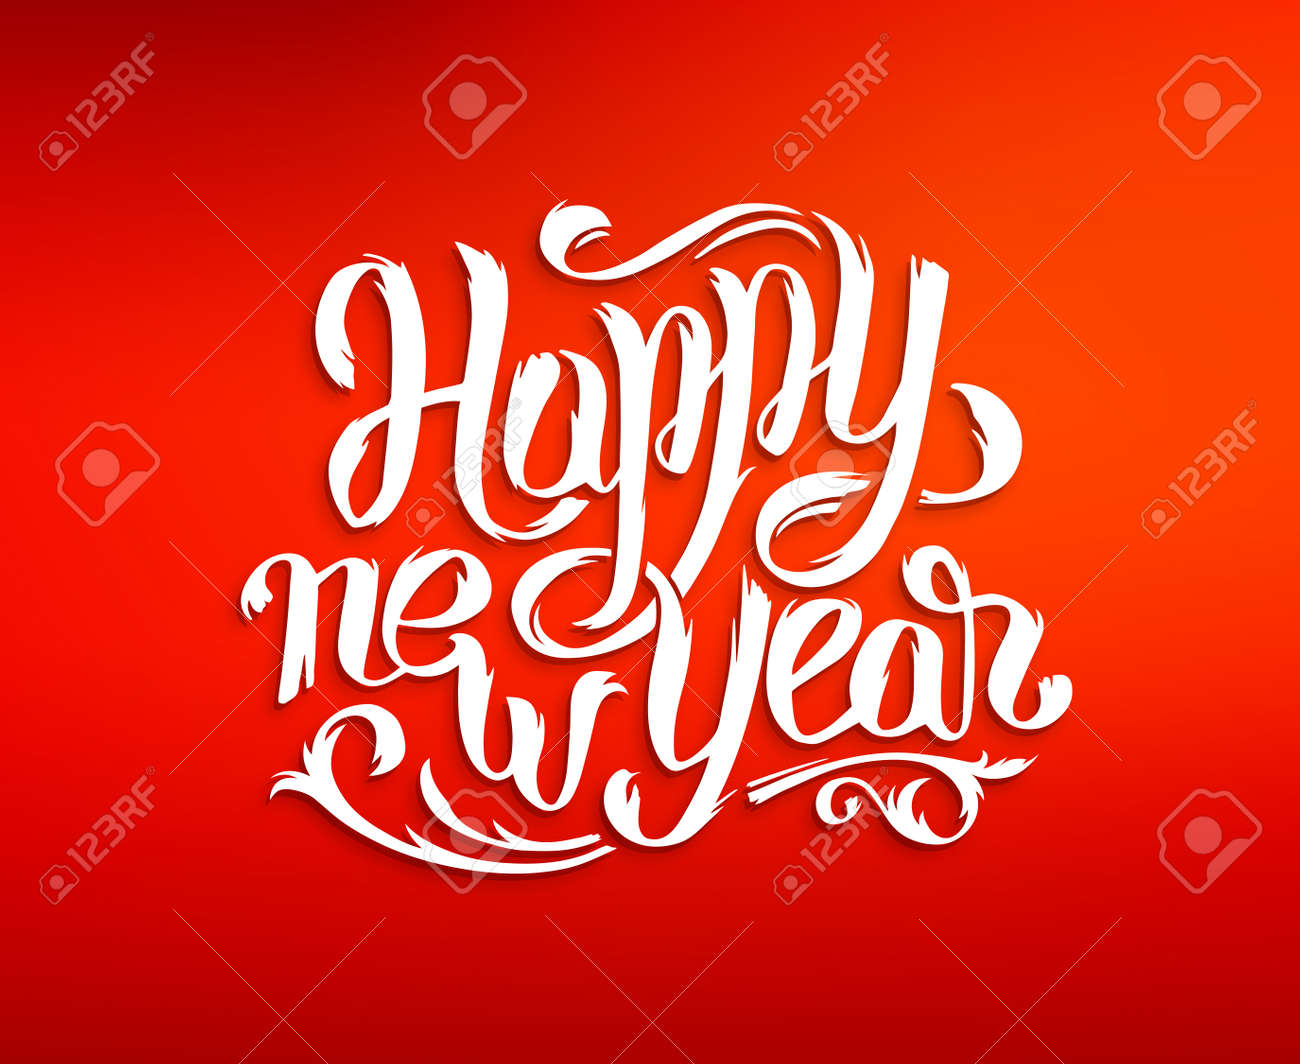 Happy New Year 2016 Greeting Card Design Red Blurred Background